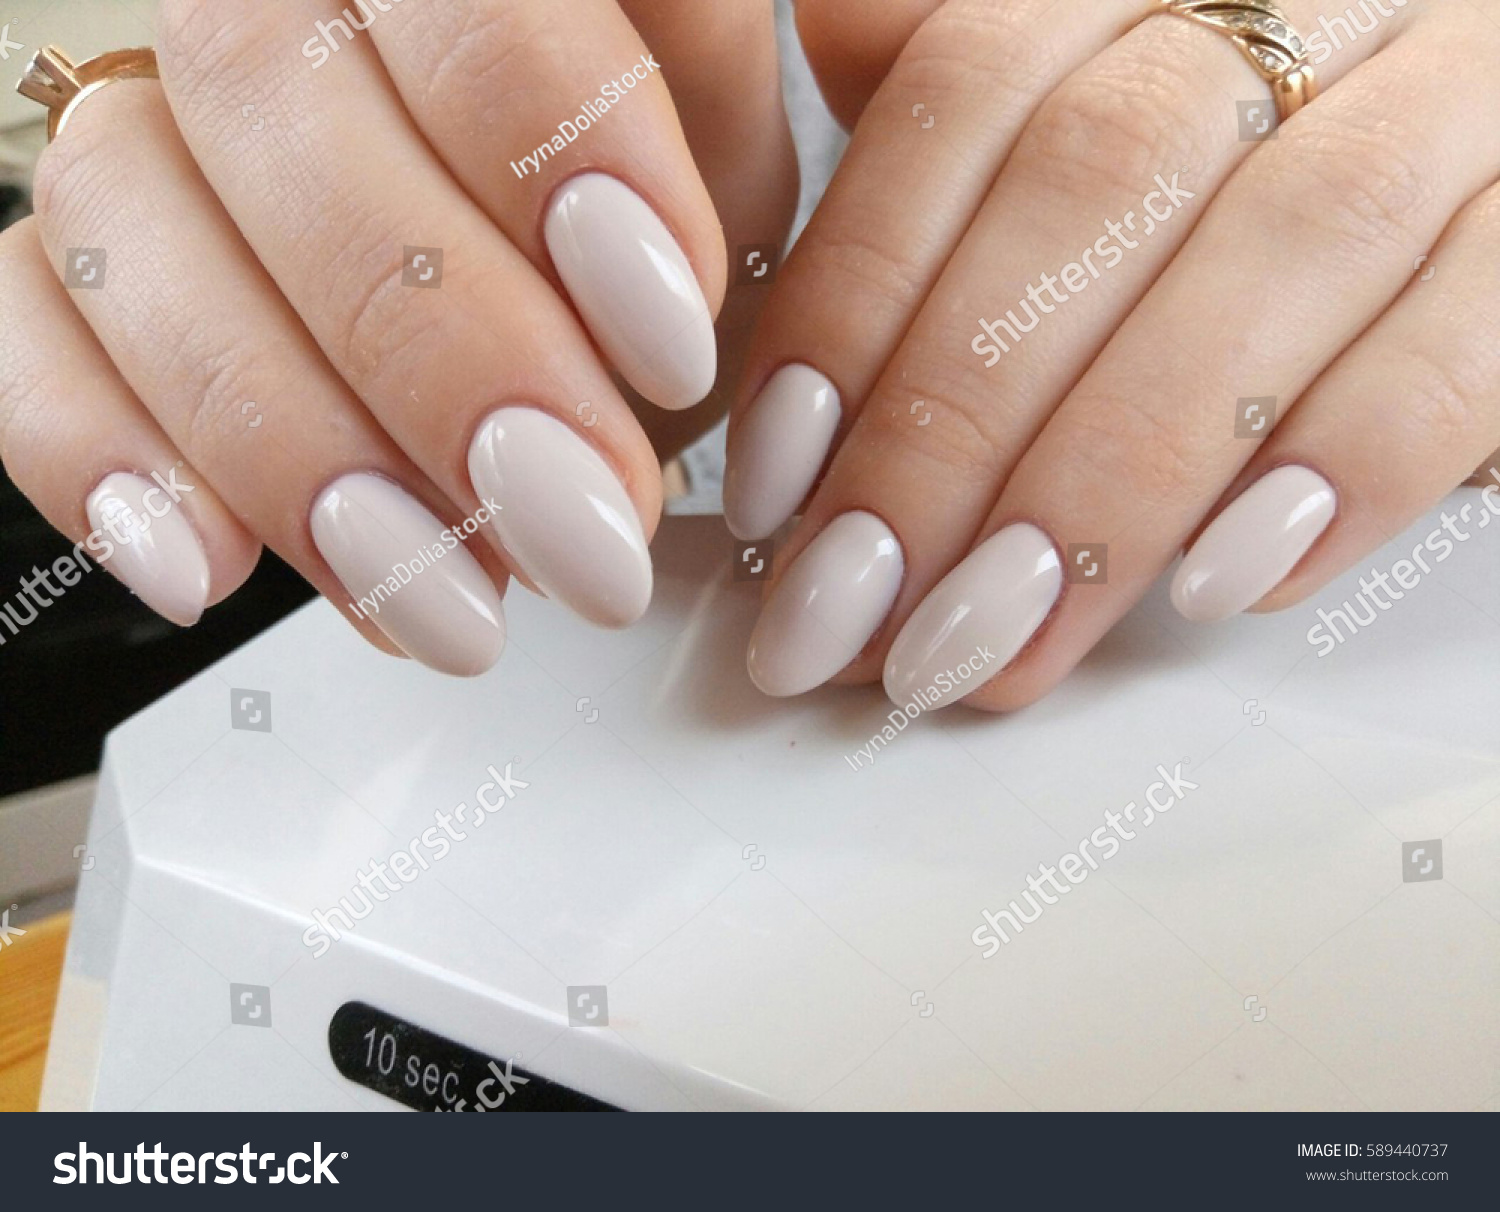 Almondshaped Nails Beige Lacquer Stock Photo (Royalty Free ...